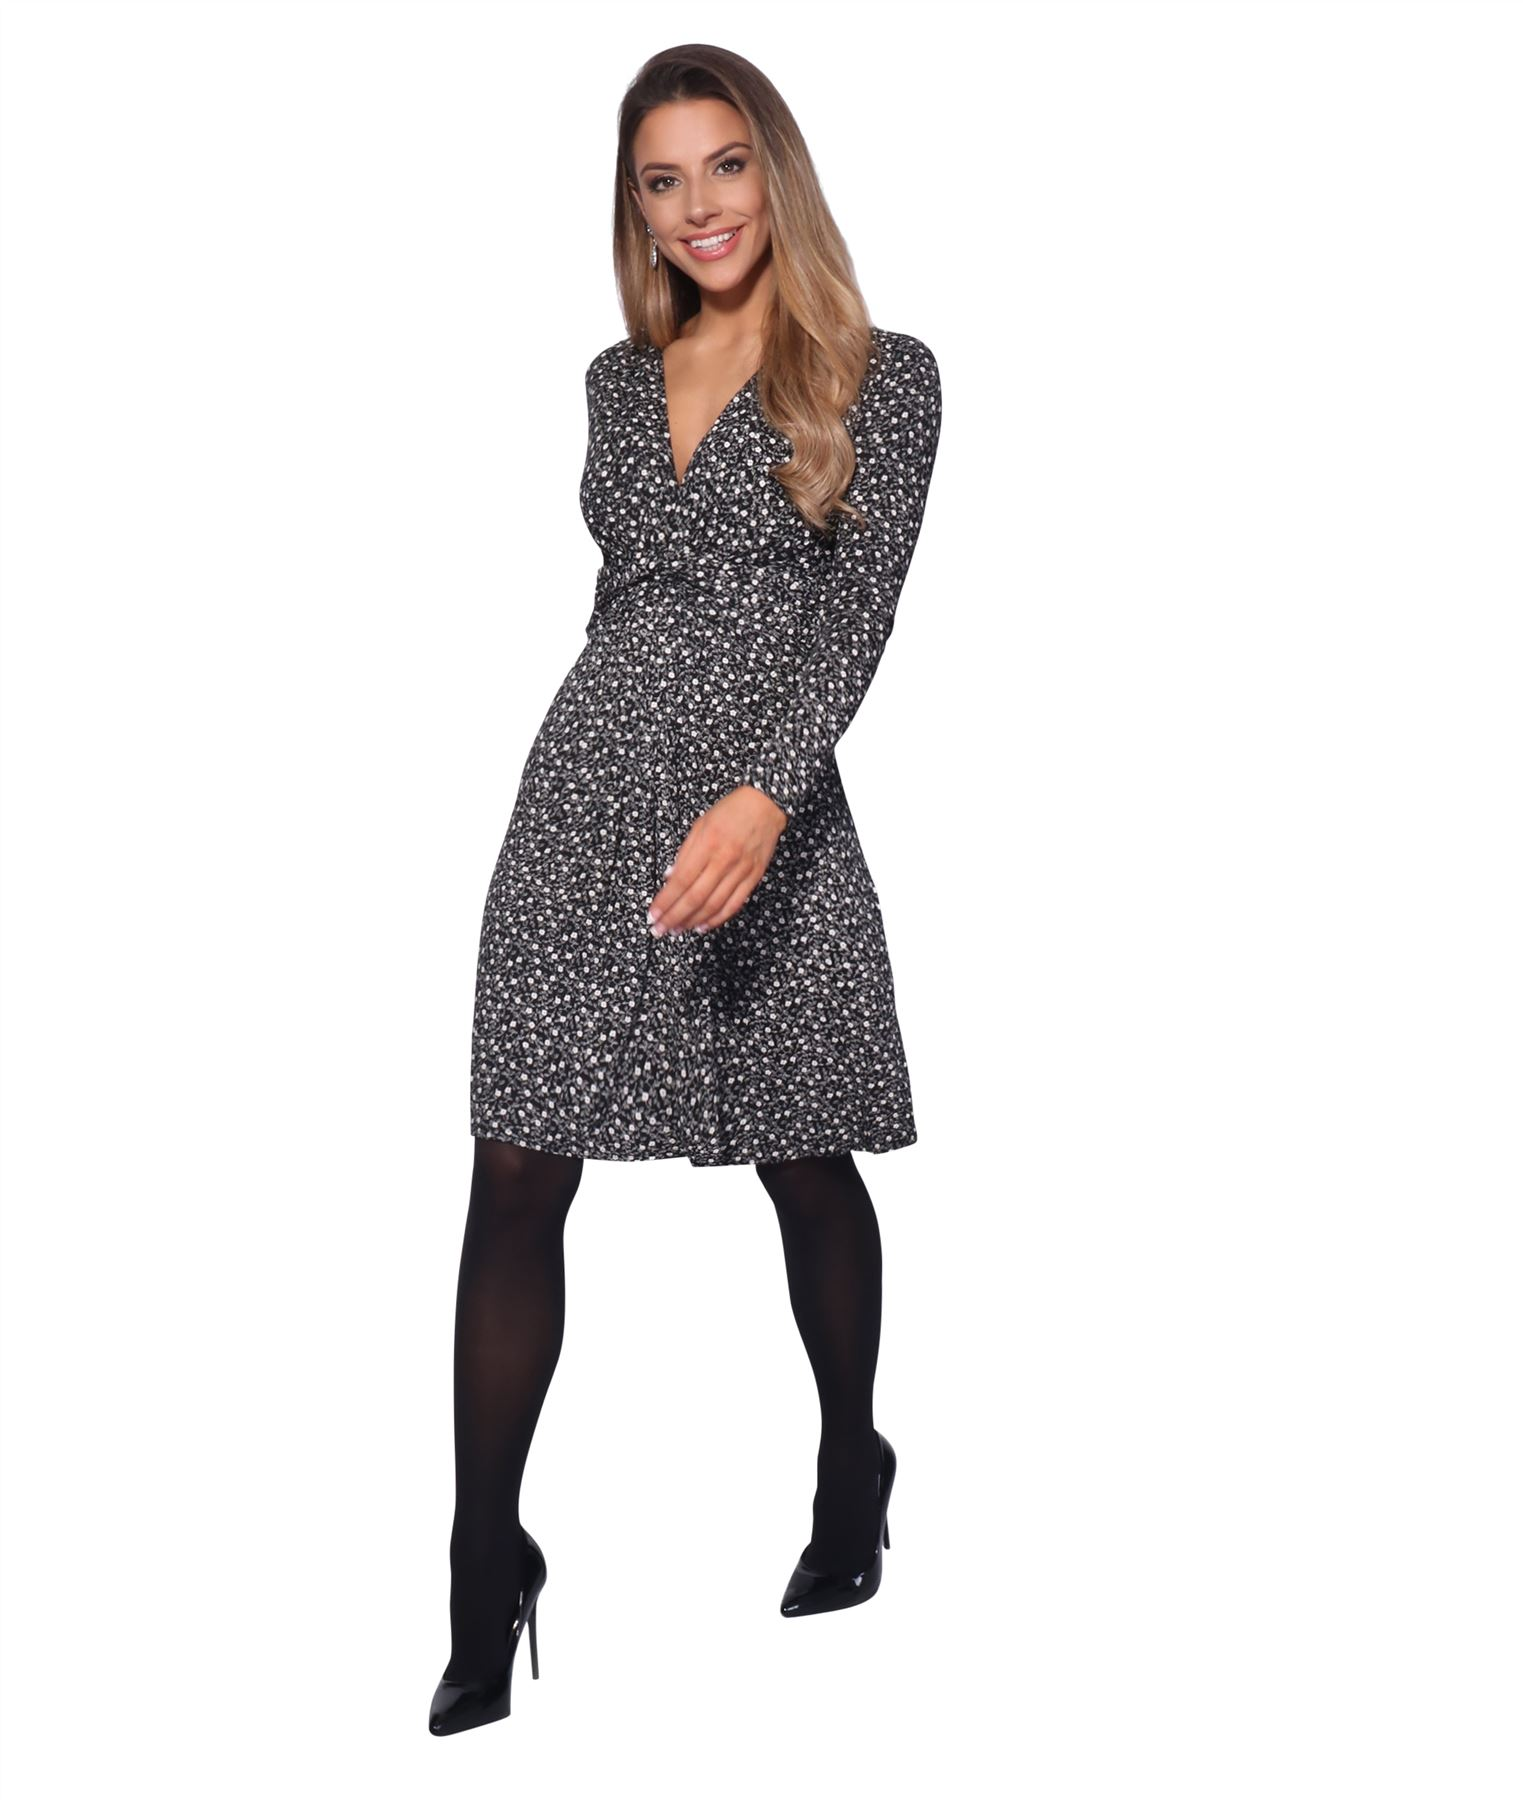 Womens-Ladies-Pattern-Dress-Drape-Print-Stretch-Long-Sleeve-Ruched-Knot-Party thumbnail 9